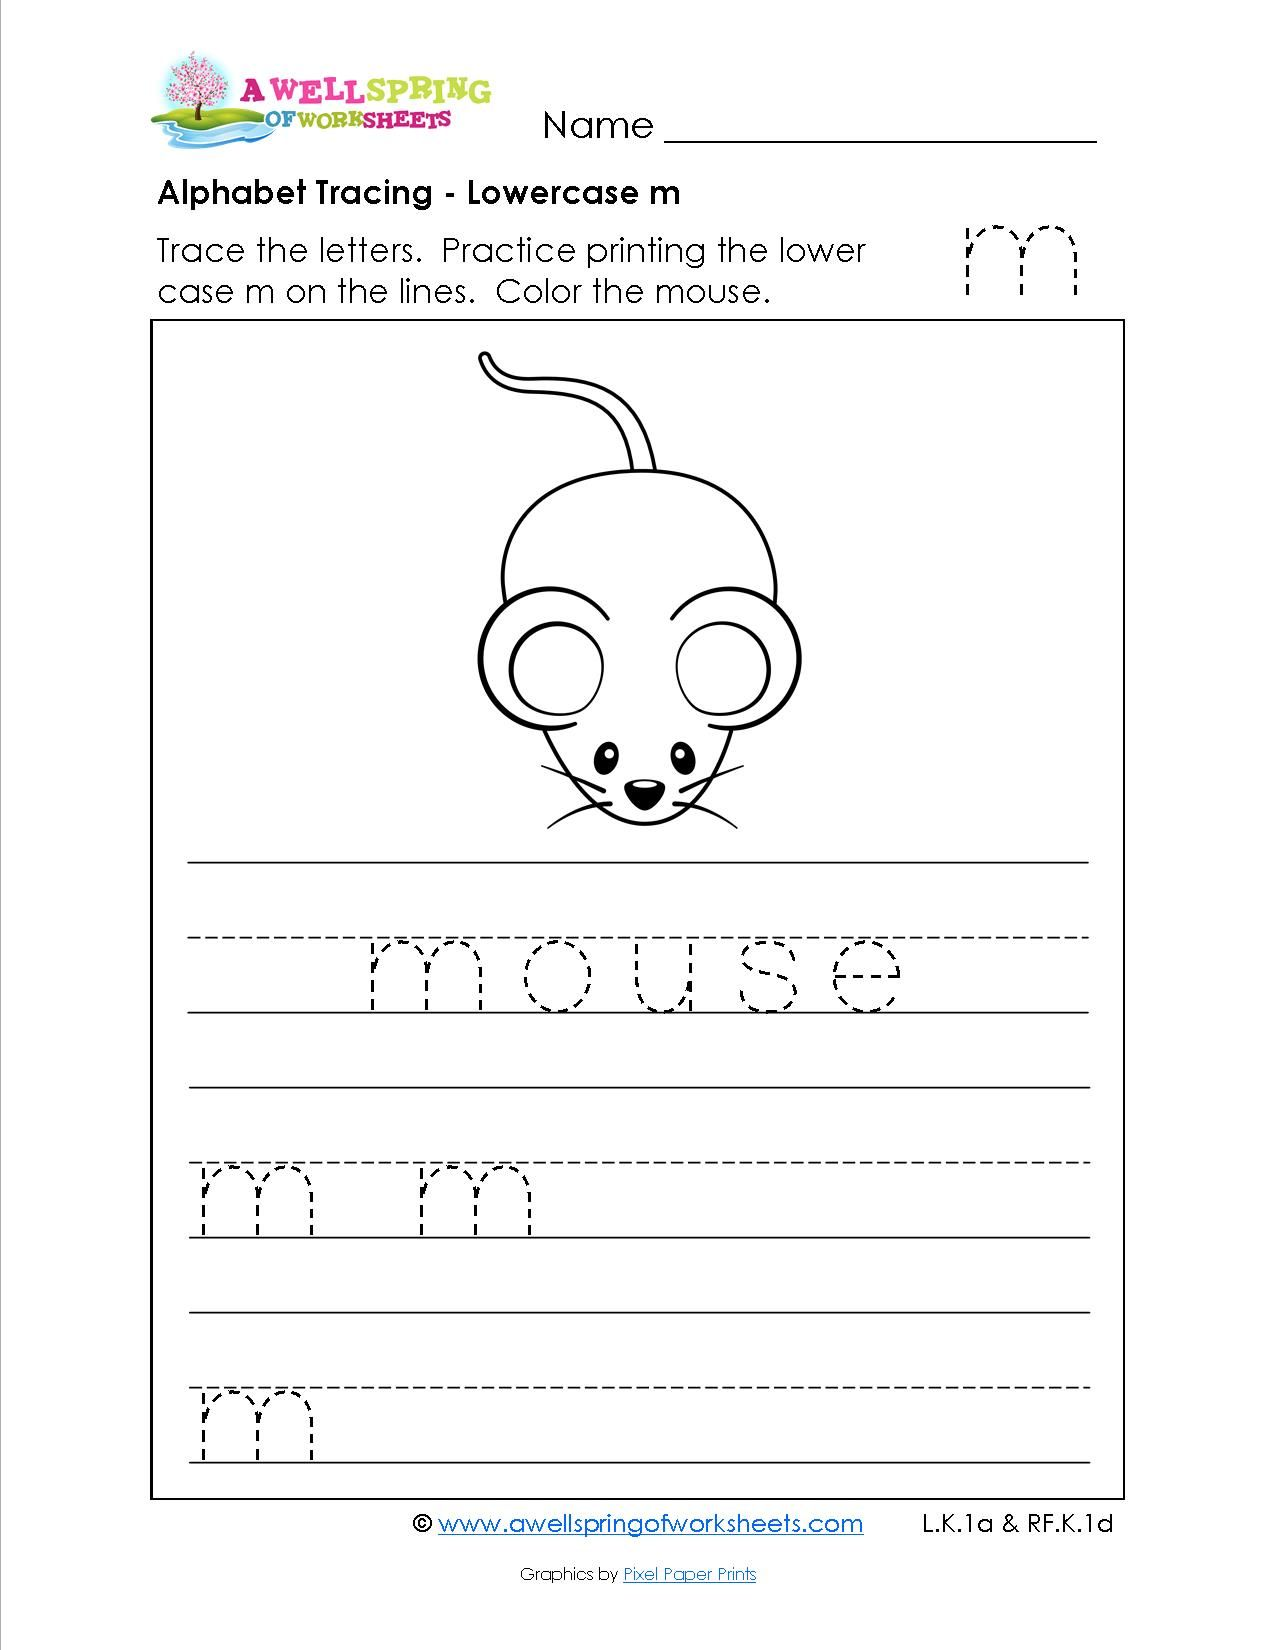 Alphabet Tracing Pages For Lowercase Letters